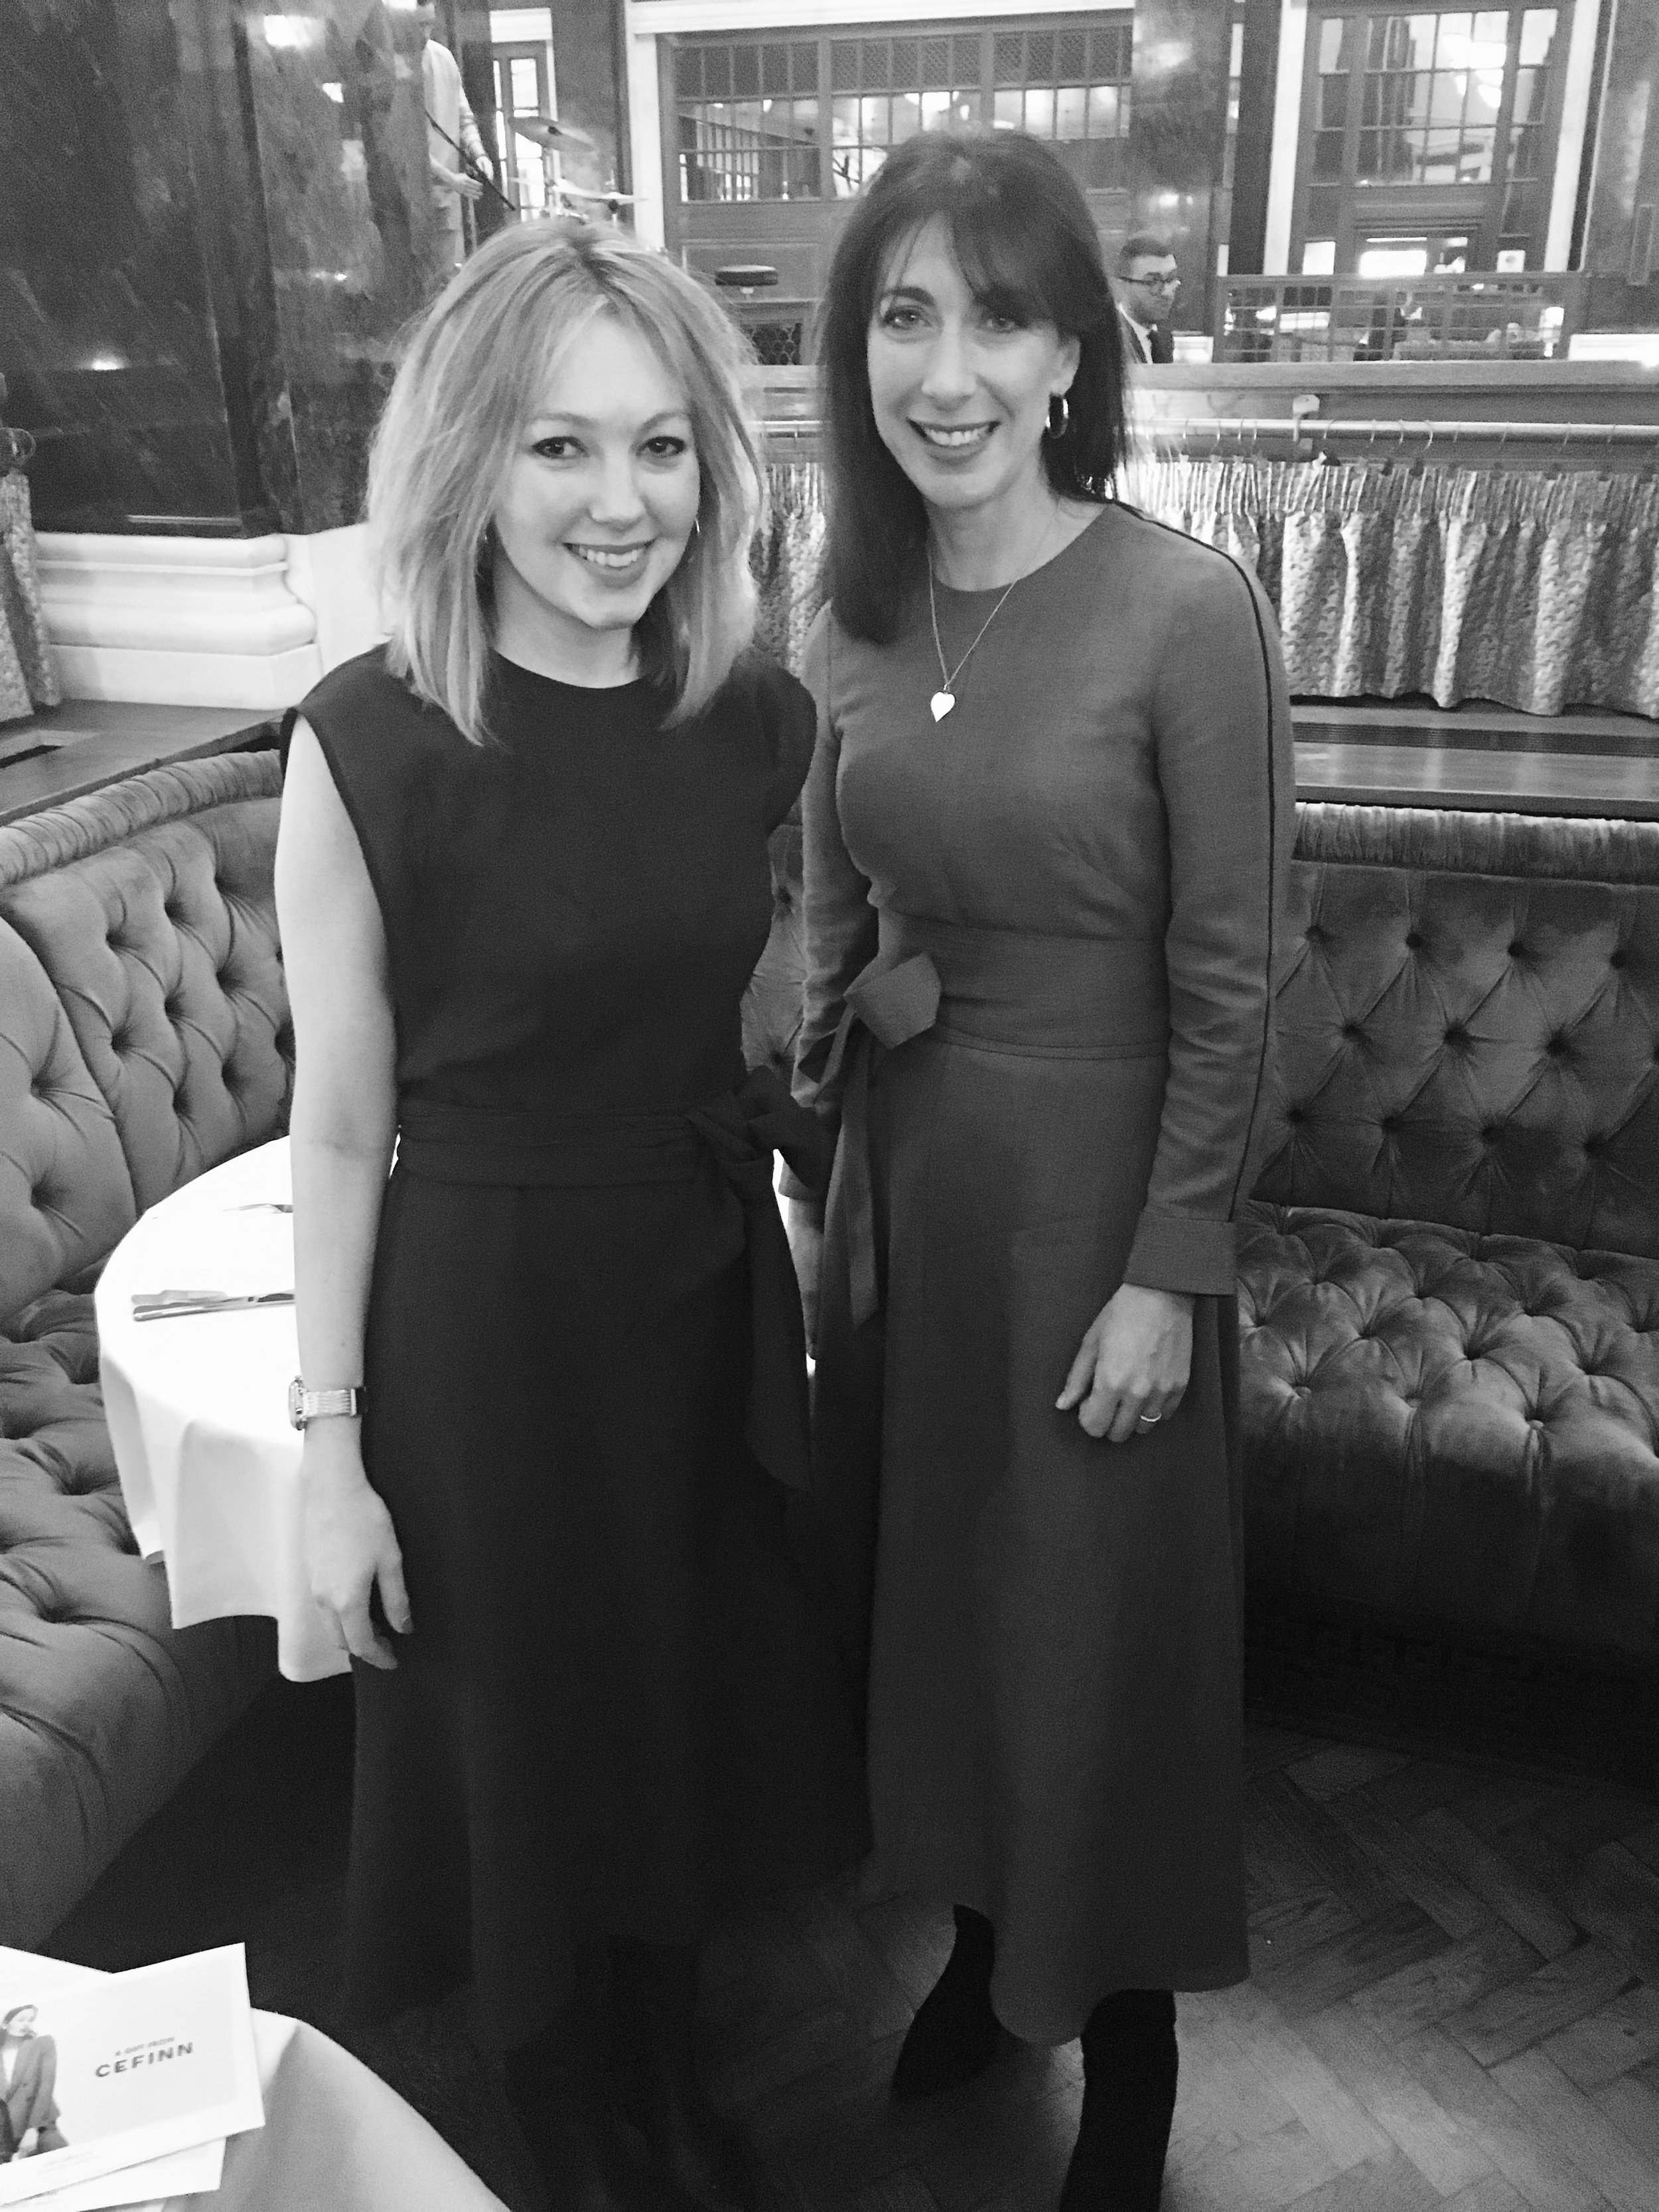 Fashion for Brunch with Samantha Cameron, March 2018 - On a snowy morning in March, I had the pleasure of interviewing Samantha Cameron at Cecconi's as part of the Ned's Fashion For Brunch series. She was exceptionally warm and forthcoming, sharing stories of visiting the Obamas, life in Number 10 - and setting up her own label, Cefinn.